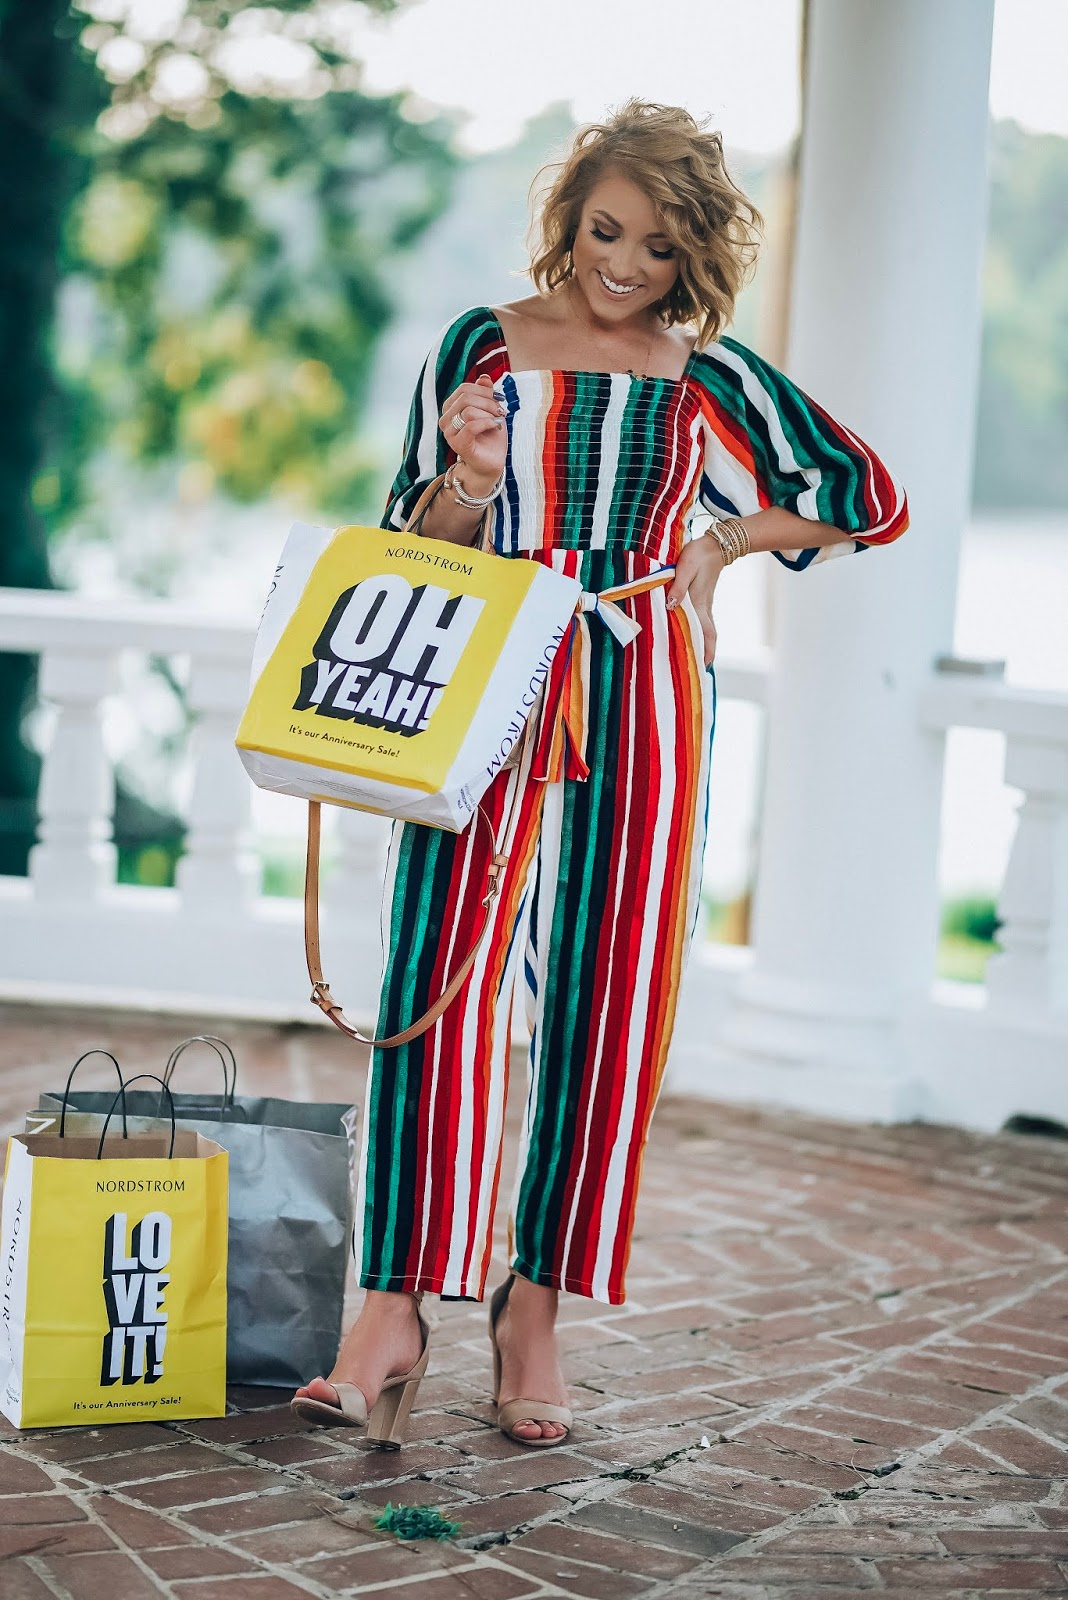 Nordstrom Anniversary Sale 2019: Dates, Times, What I'll Be Shopping For, My Wish List & More - Something Delightful Blog